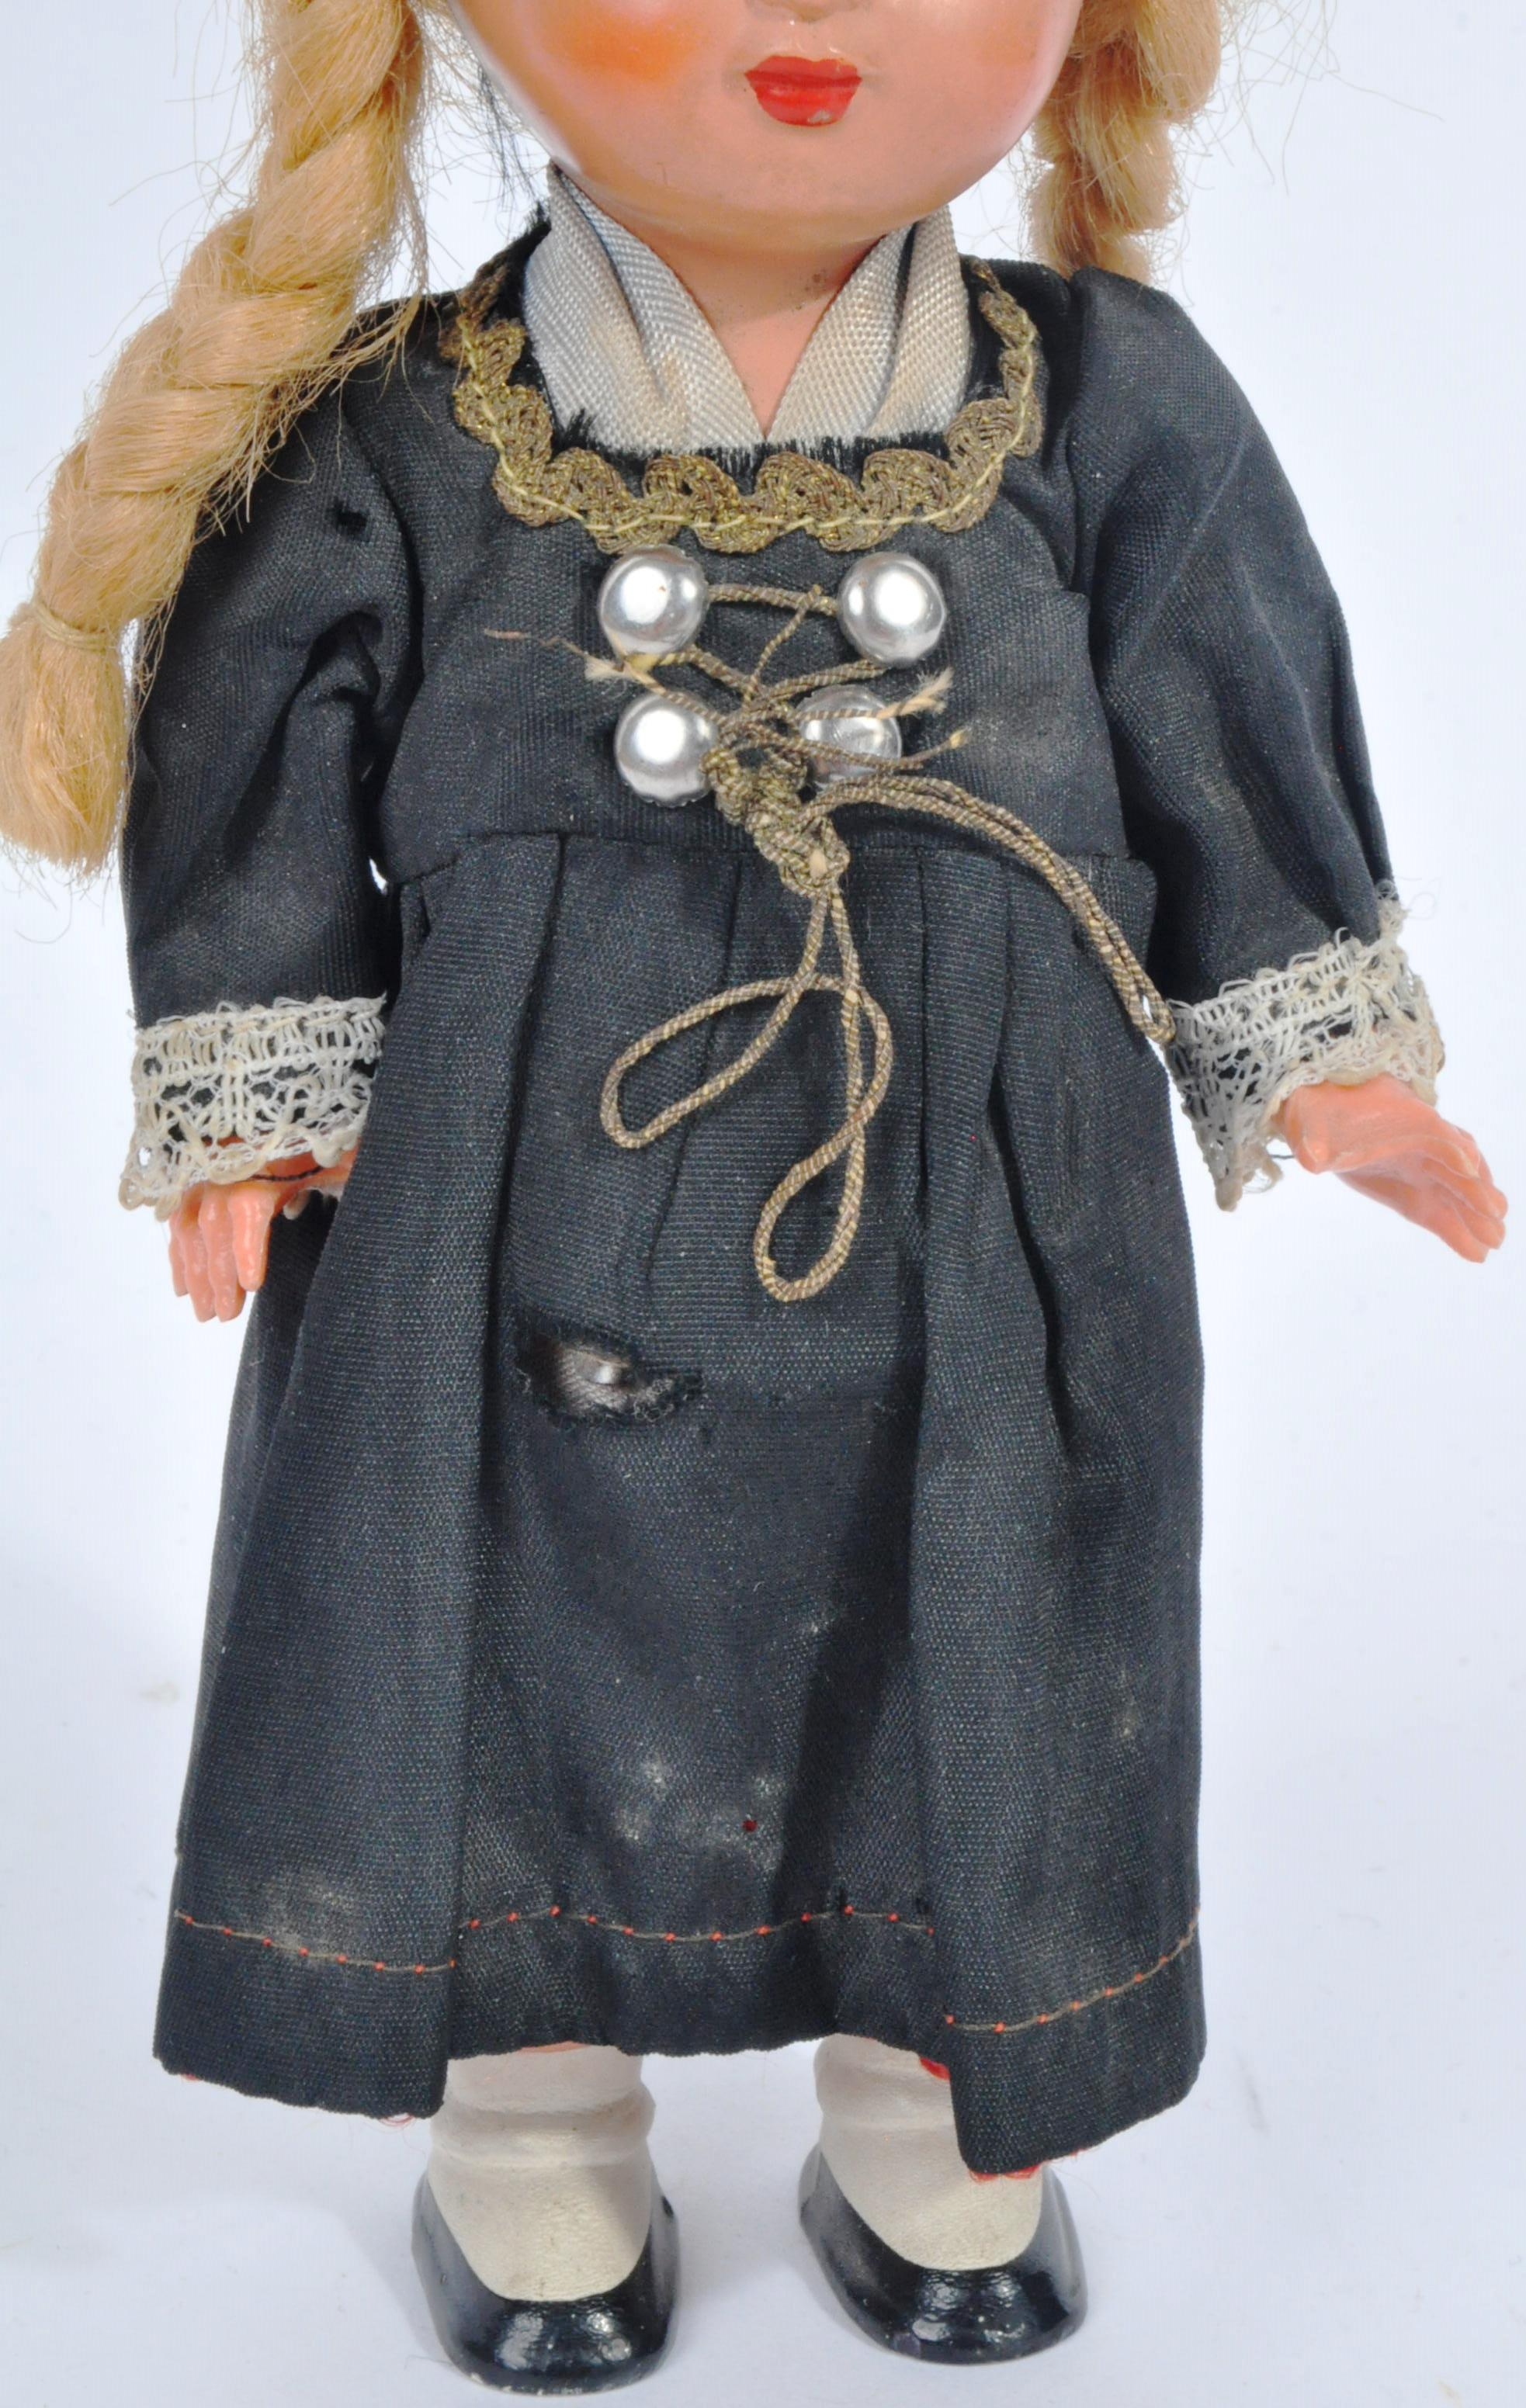 VINTAGE ENGLISH TEDDY BEAR AND GERMAN SCHUCO DOLL - Image 7 of 8